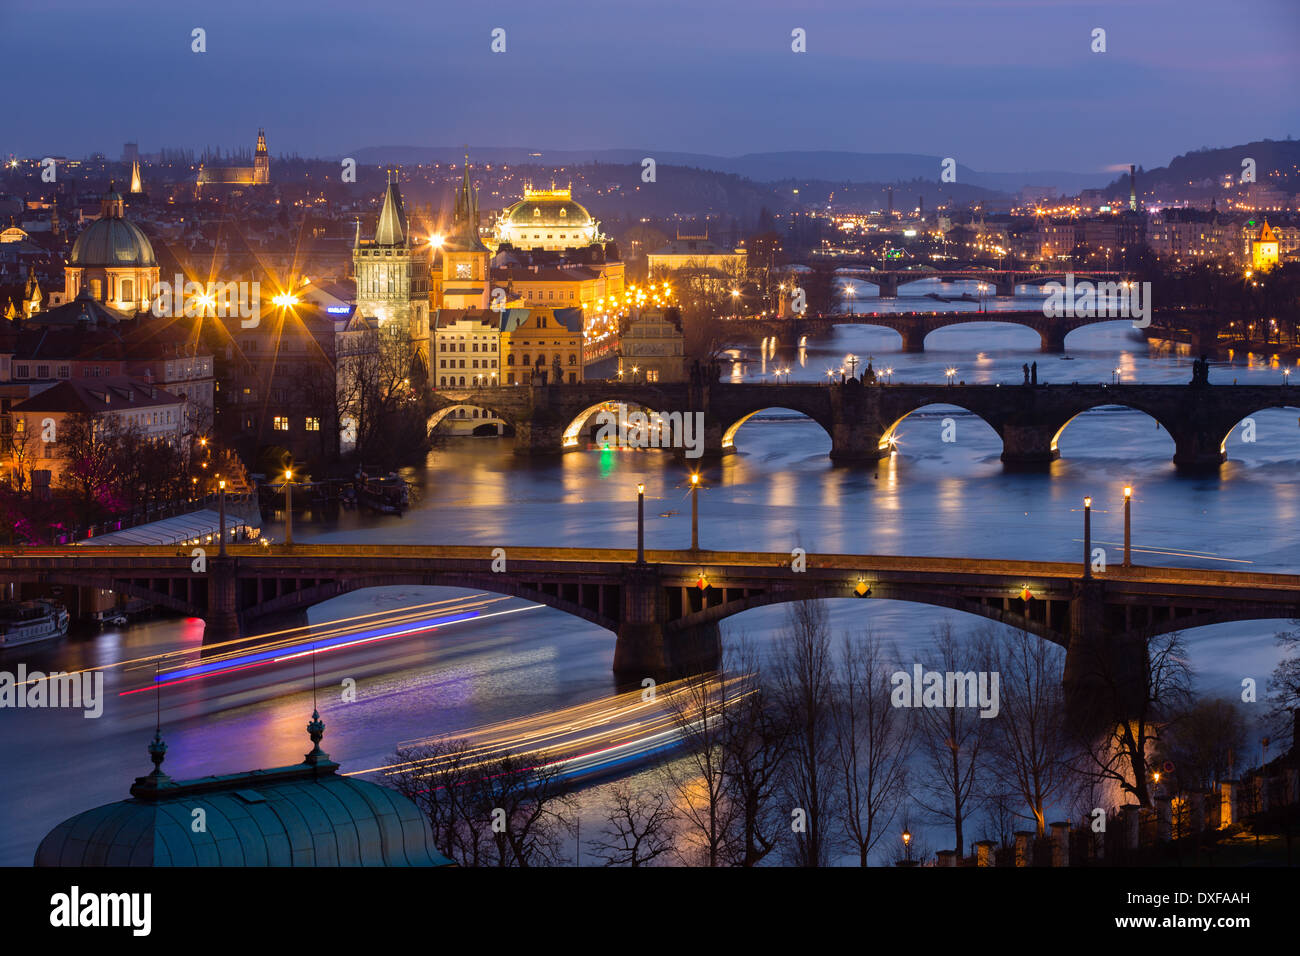 the Manes, Charles and Legion Bridges over the Vltava River at dusk, with the Old Town on the left, Prague, Czech Republic - Stock Image